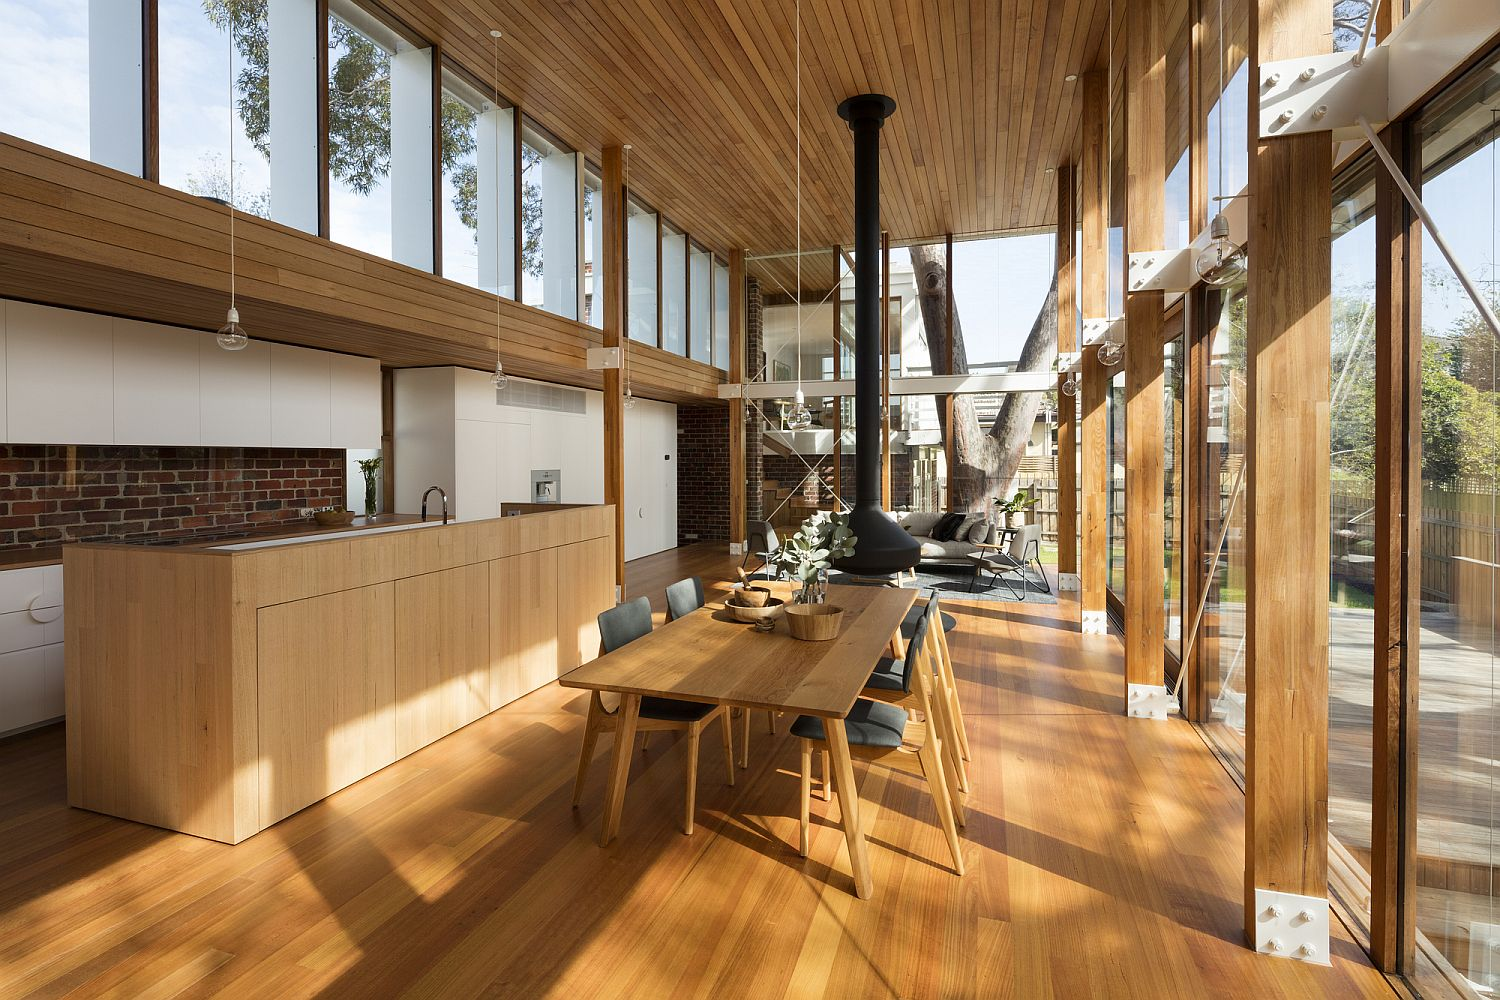 Exquisite-Melbourne-home-in-brick-and-wood-where-clerestory-windows-make-the-biggest-impact-visually-51556